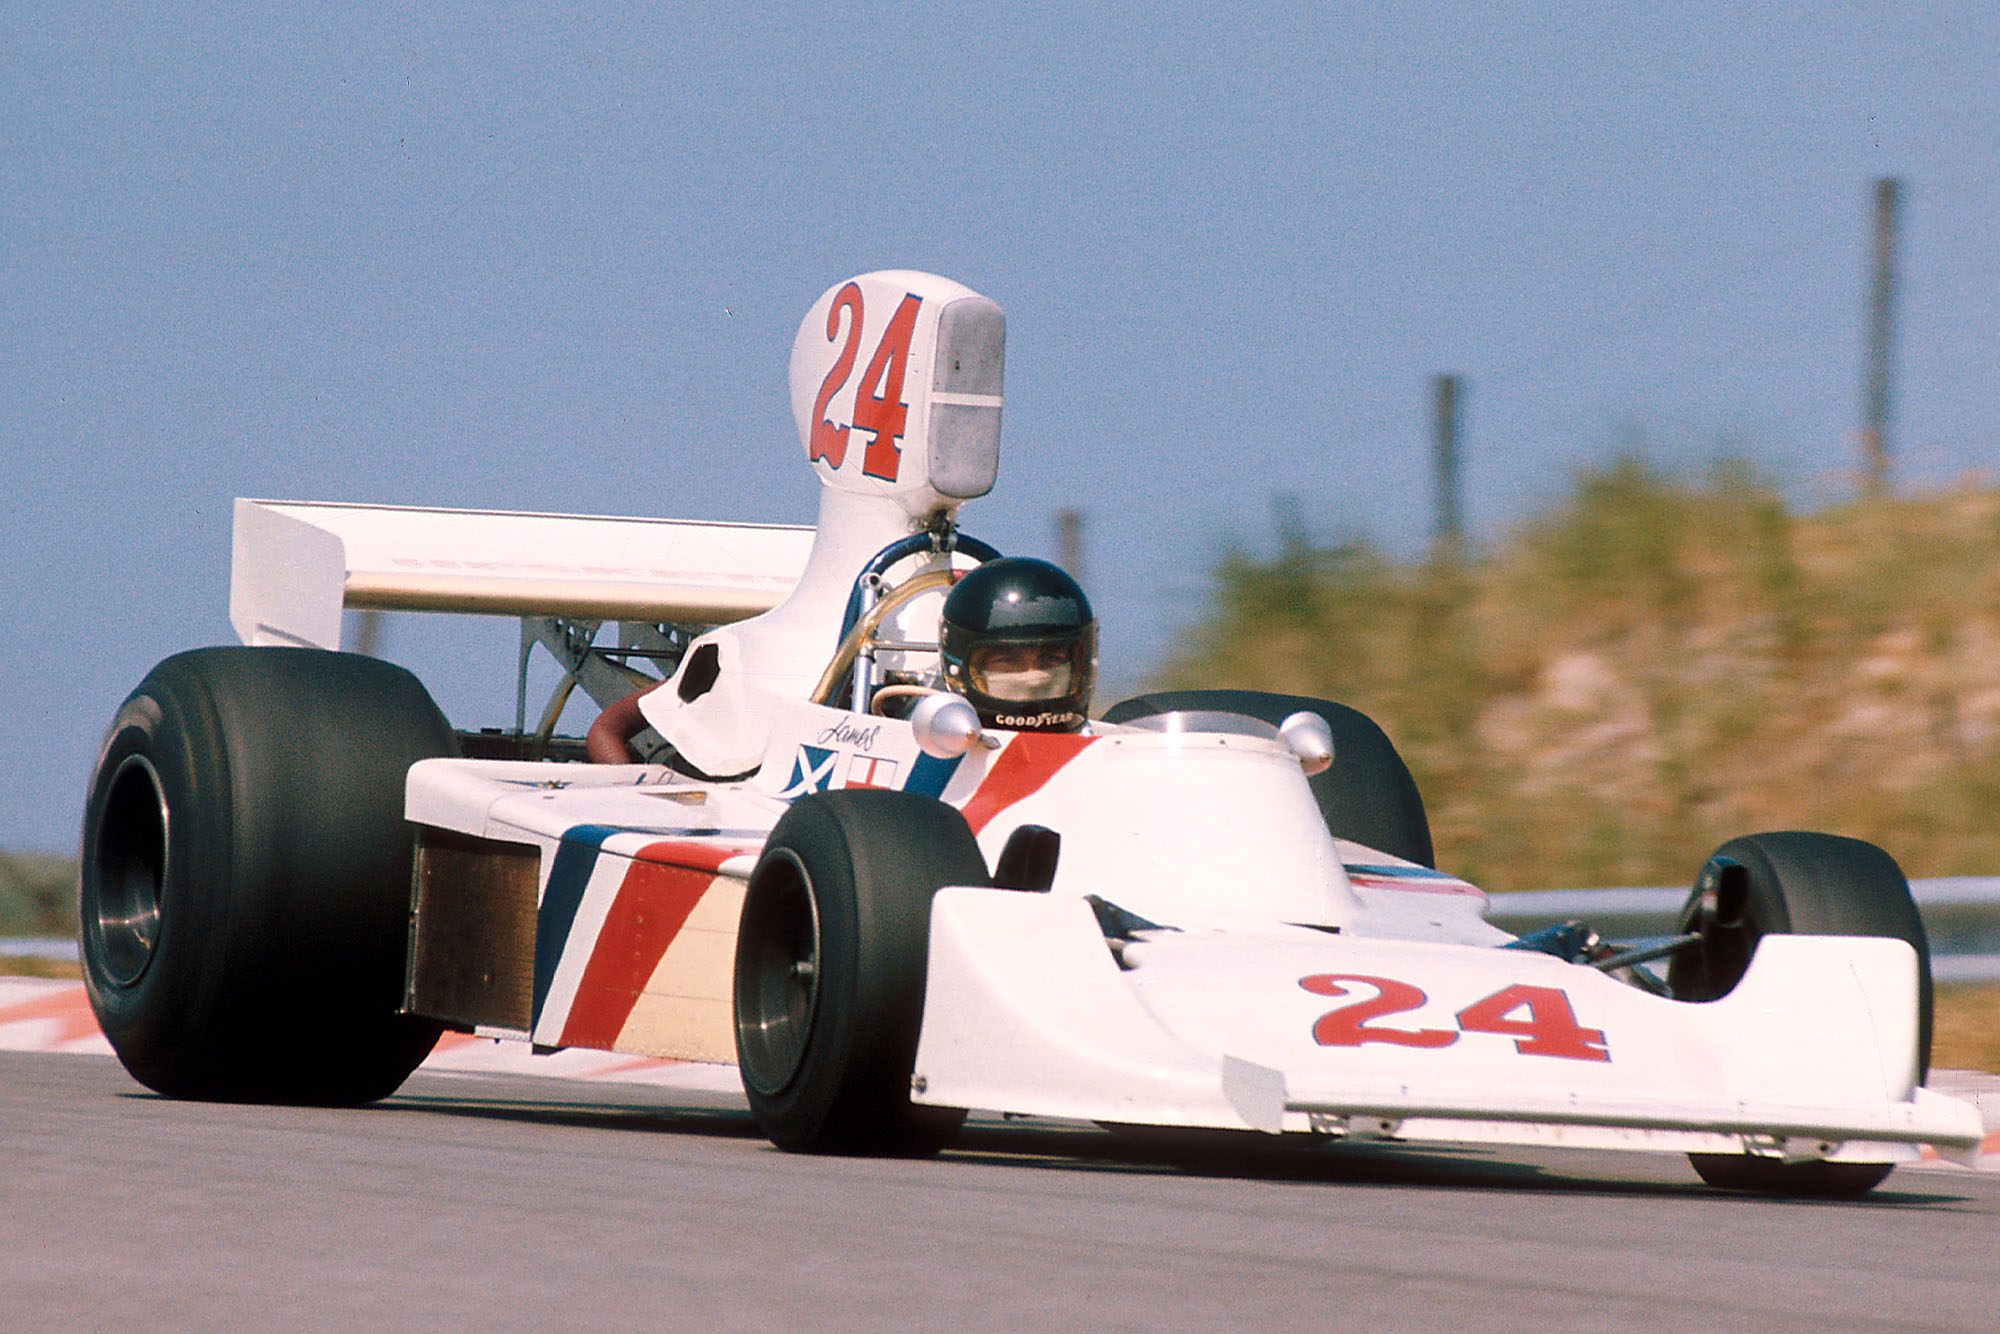 James Hunt (Hesketh) driving at the 1975 Dutch Grand Prix, Zandvoort.